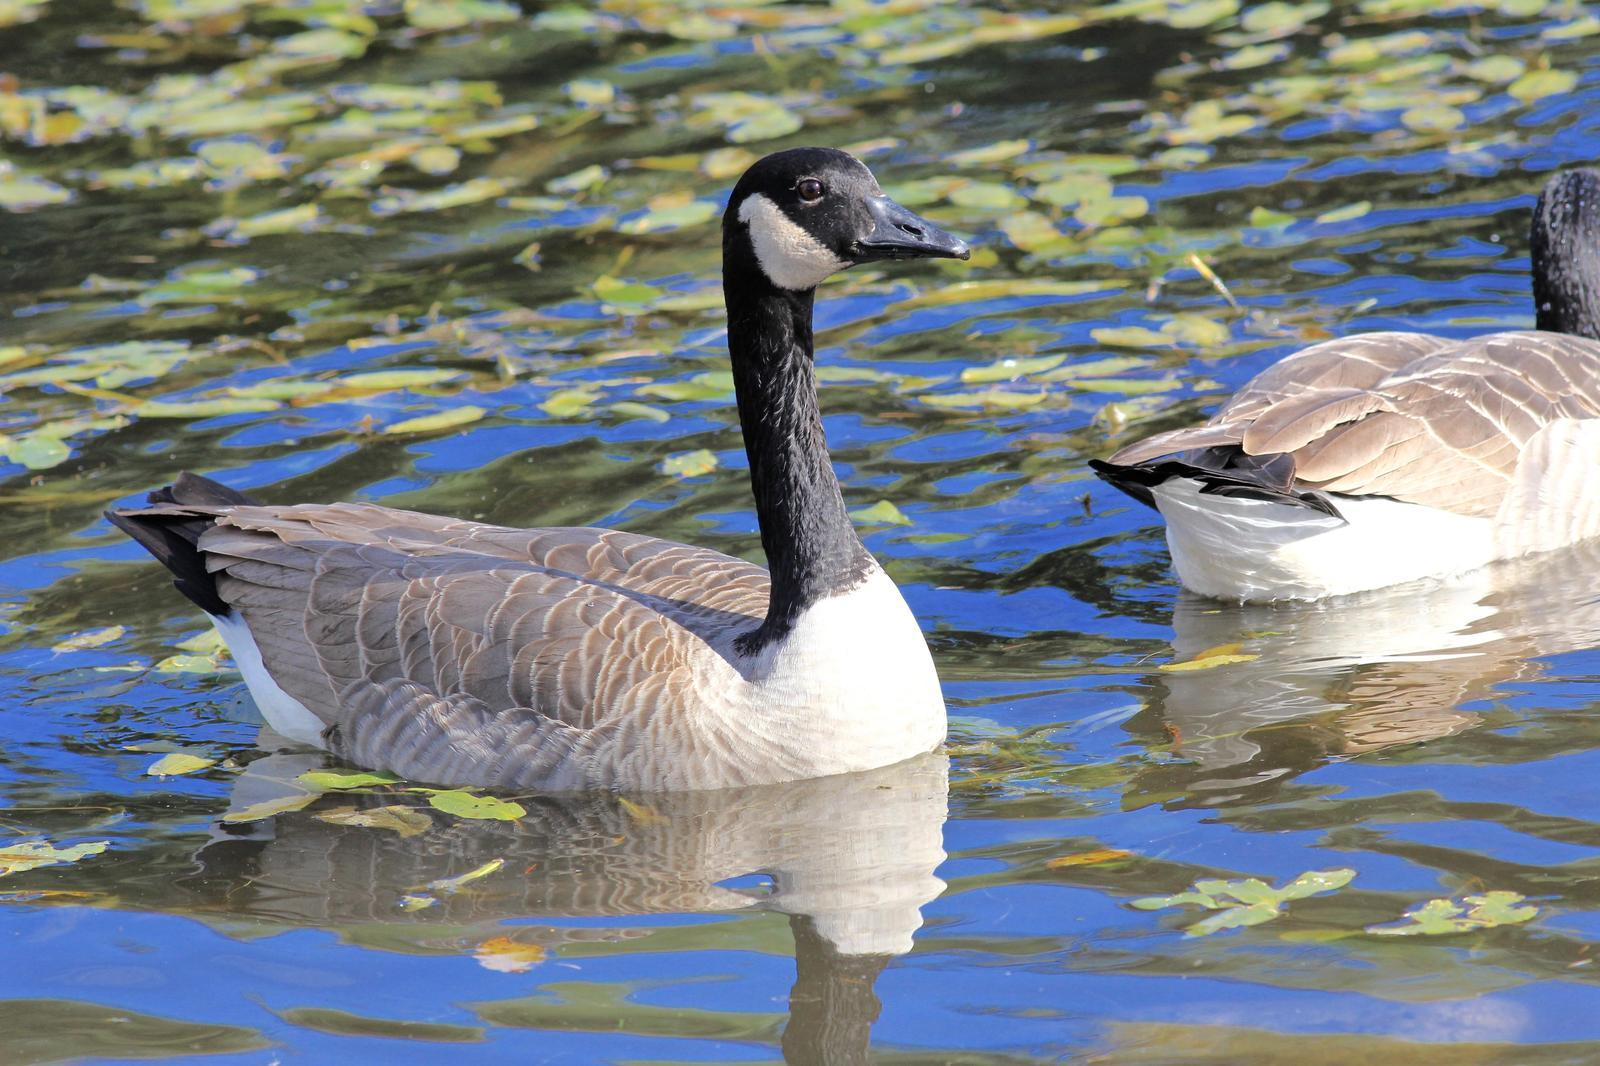 Canada Goose Photo by Kathryn Keith